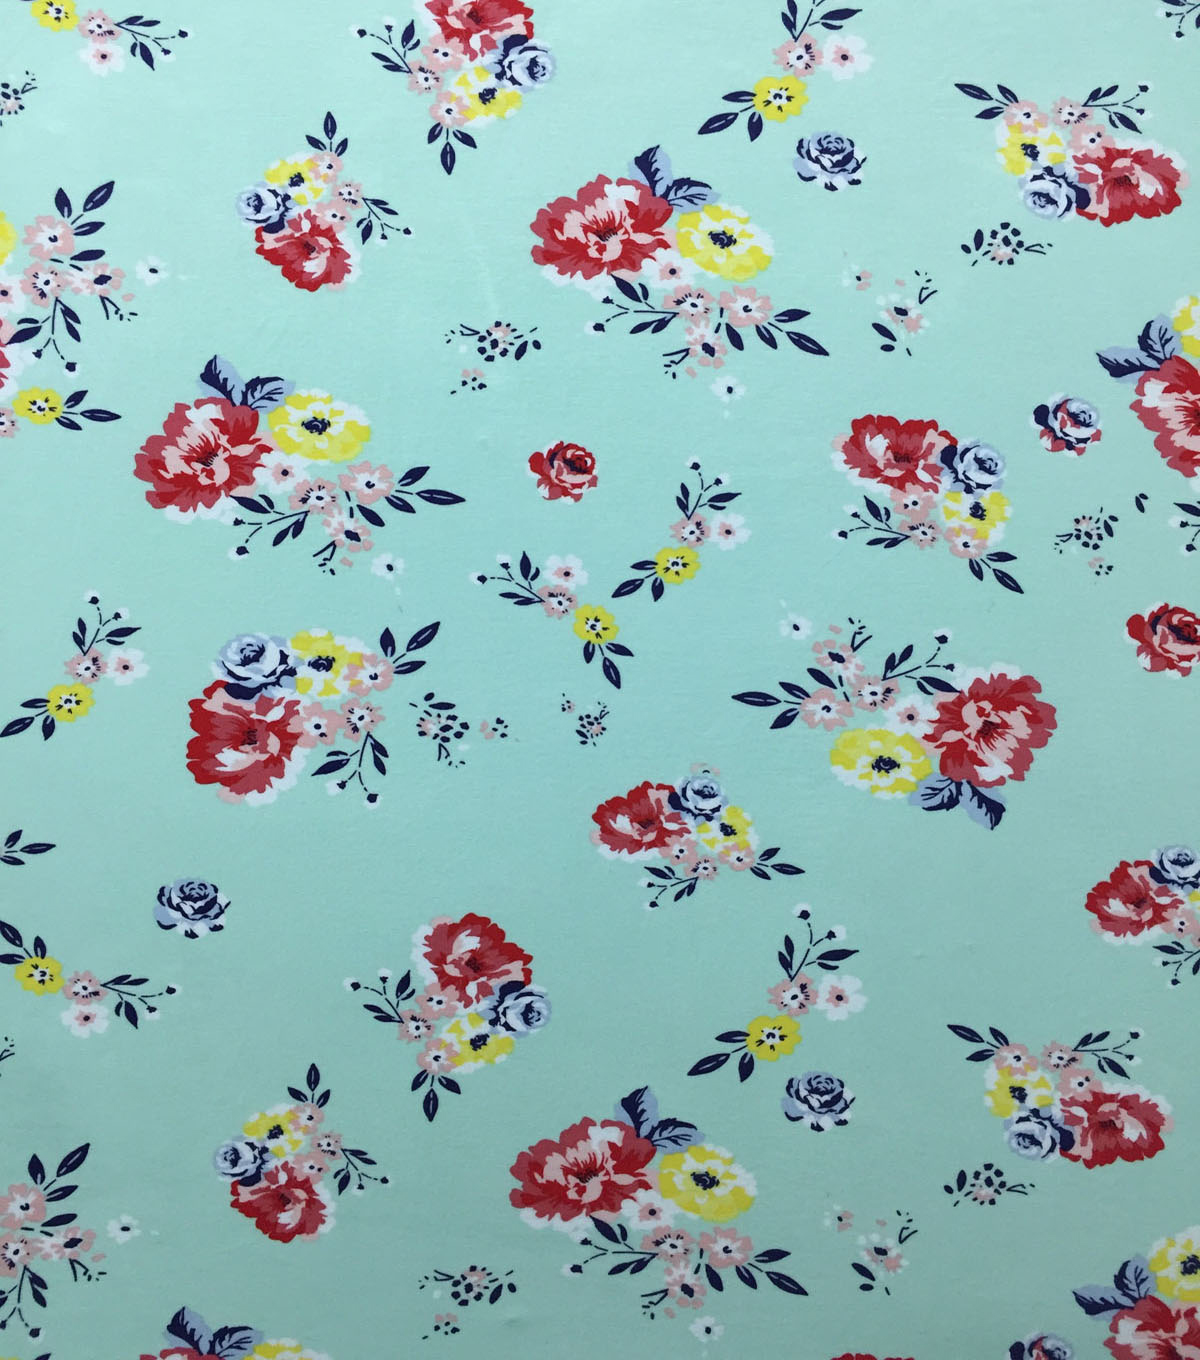 Rayon & Spandex Printed Knit Fabric-Vintage Floral on Mint